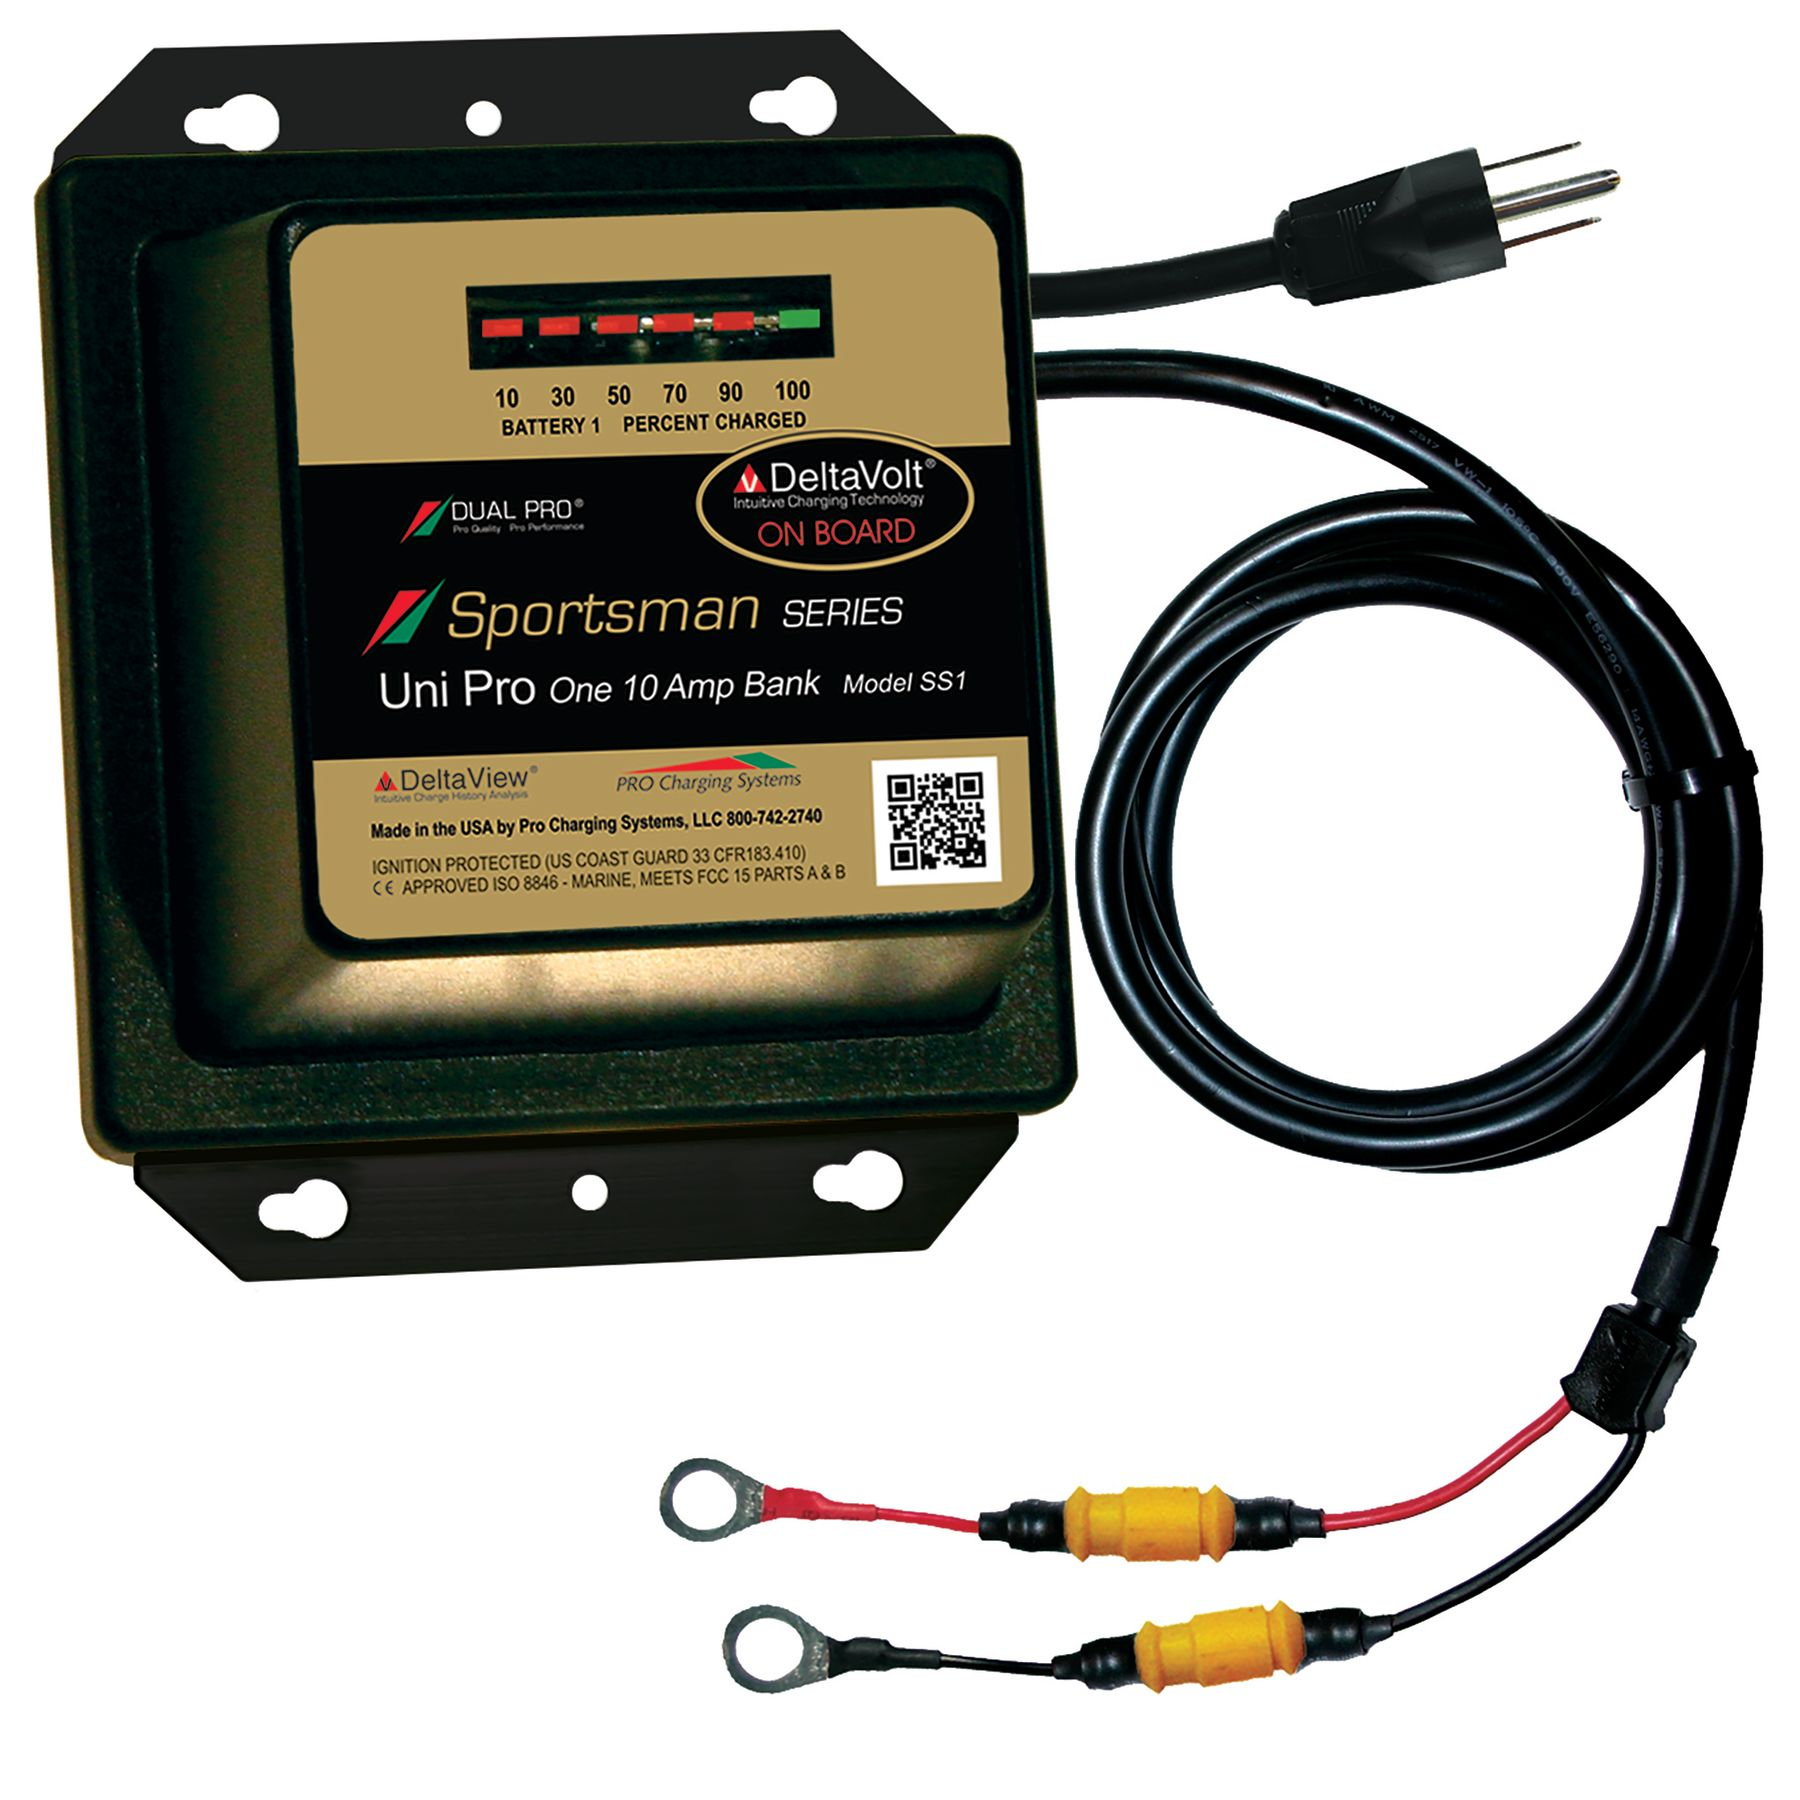 Ss1 Dual Pro 12 Volt 10 Amp Sportsman Series Charger Wiring Onboard Battery